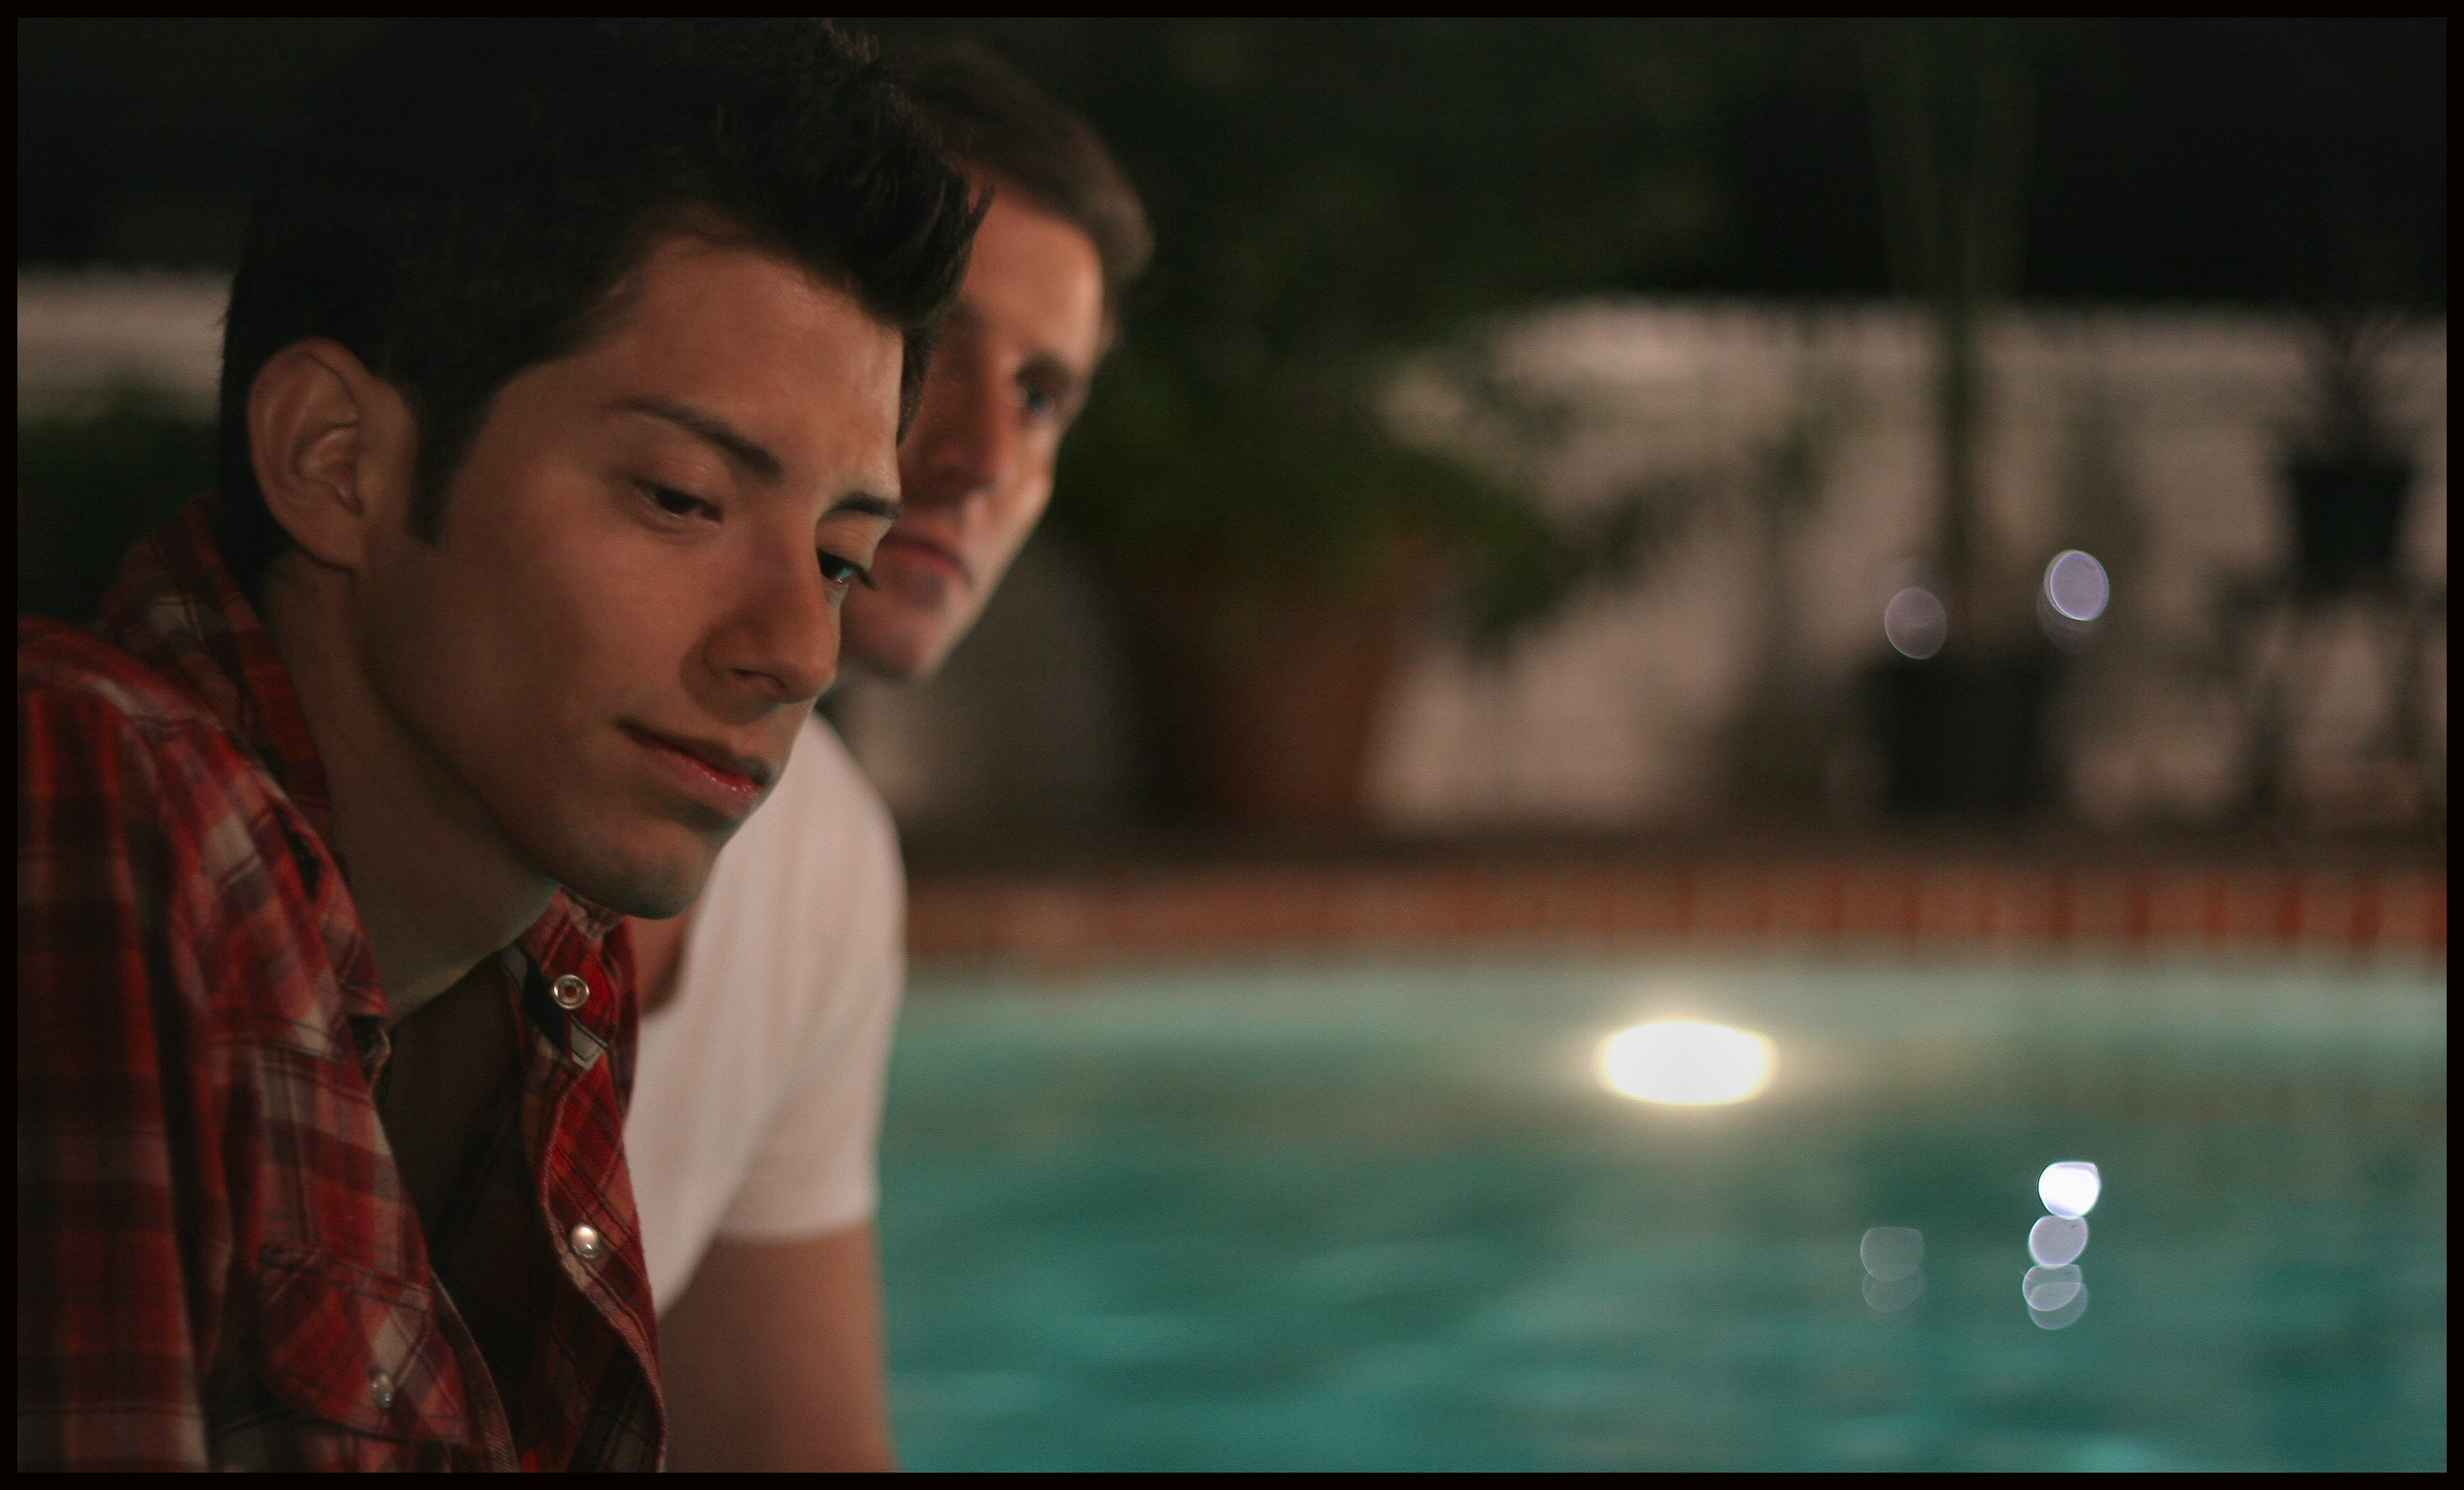 Rafael & Markus at pool after a night out